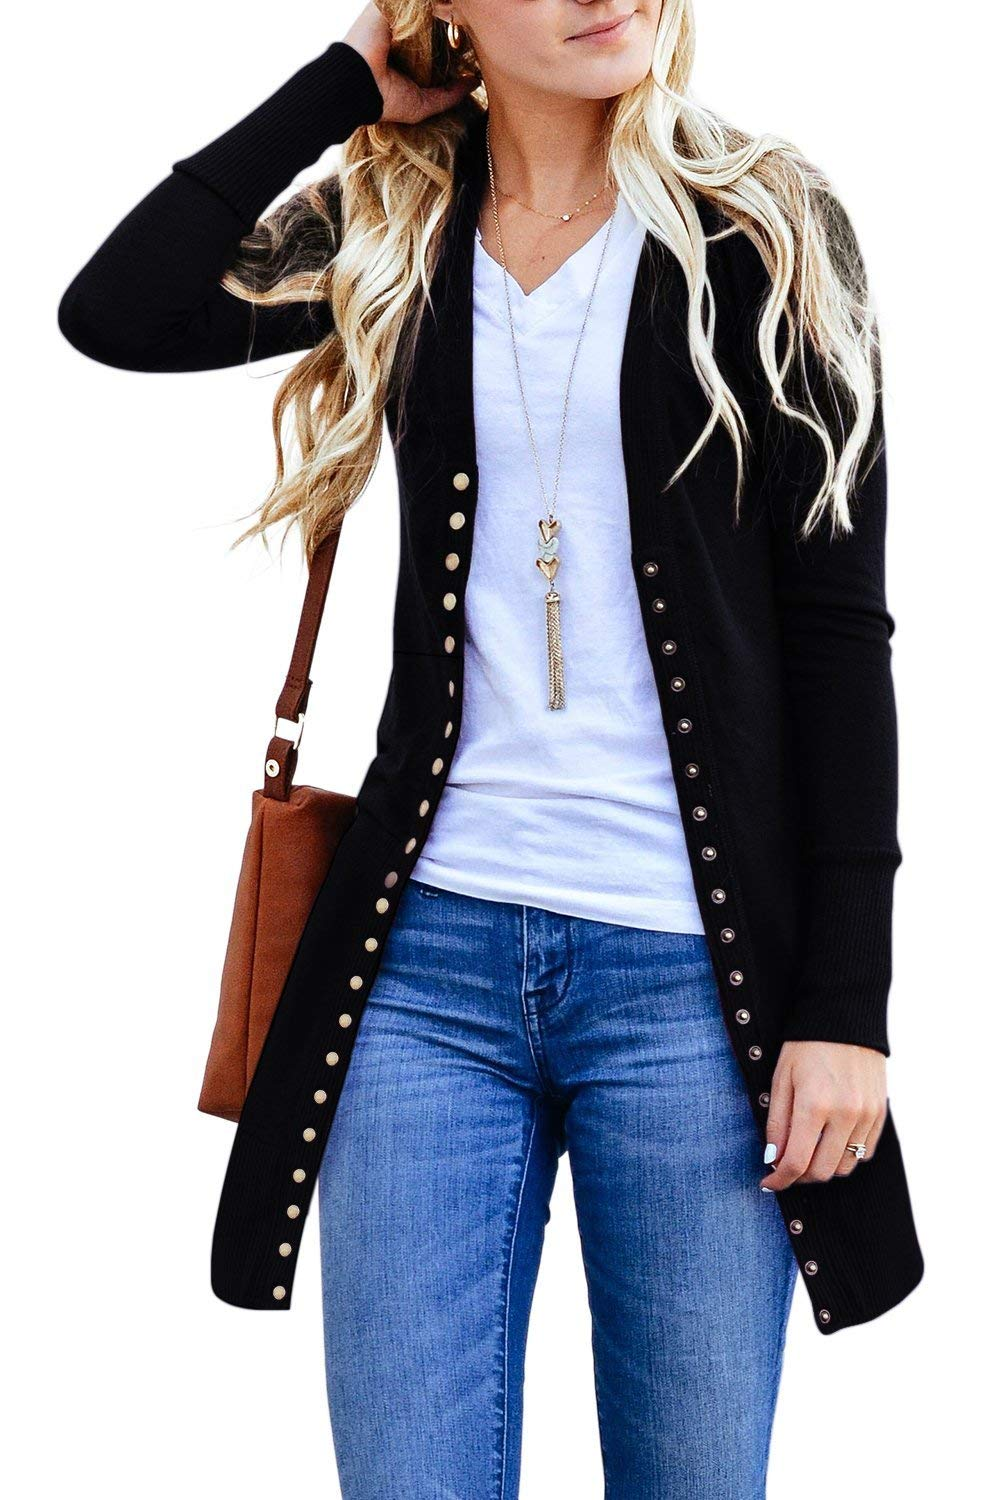 Snap Button Down Black Long Sleeve Knit Ribbed Her Fashion Cardigan